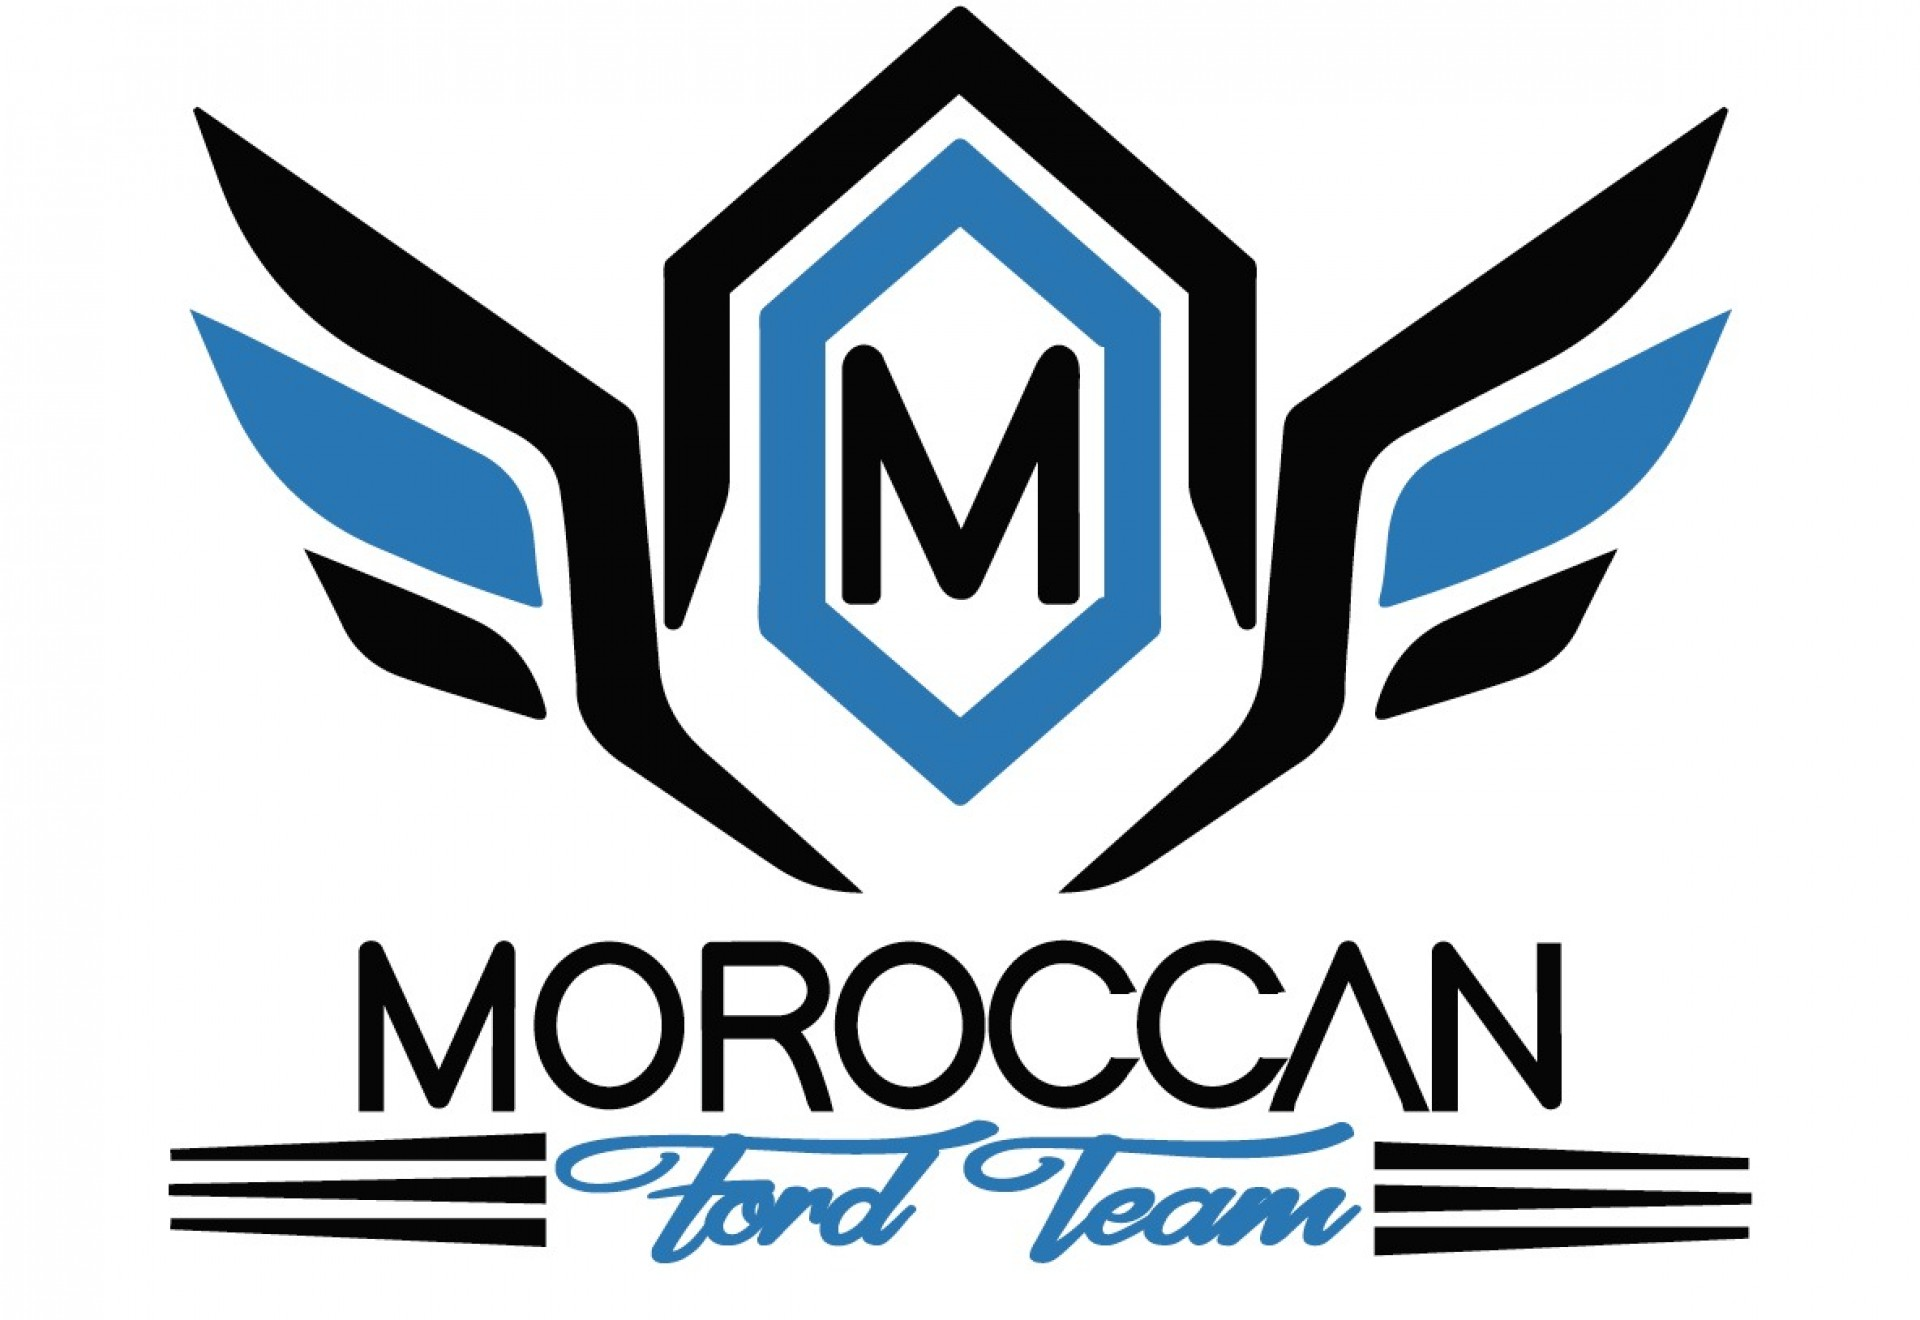 Moroccan Ford Team (MFT) logo